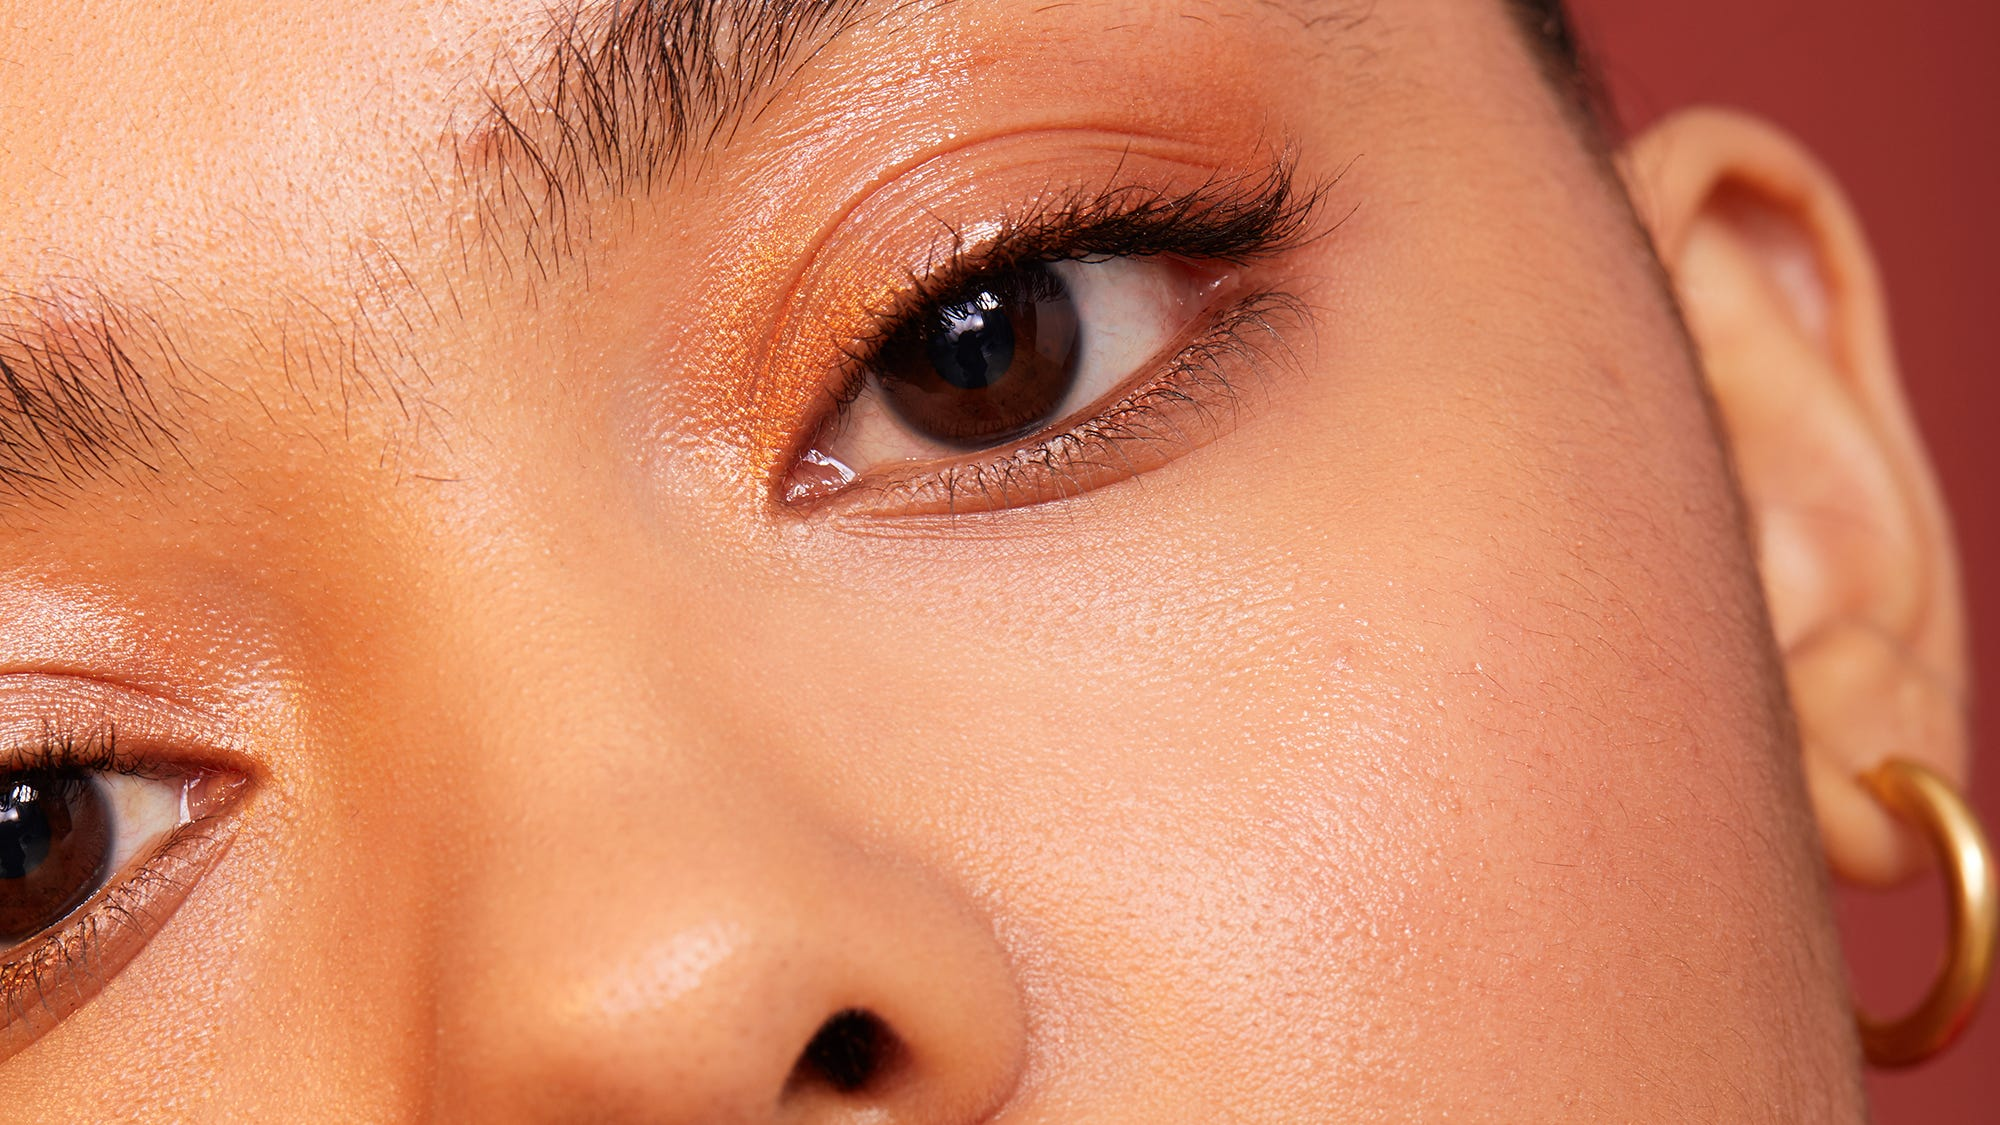 a29c88c9397 Eyelash Extensions Pros And Cons To Read Before Lashes